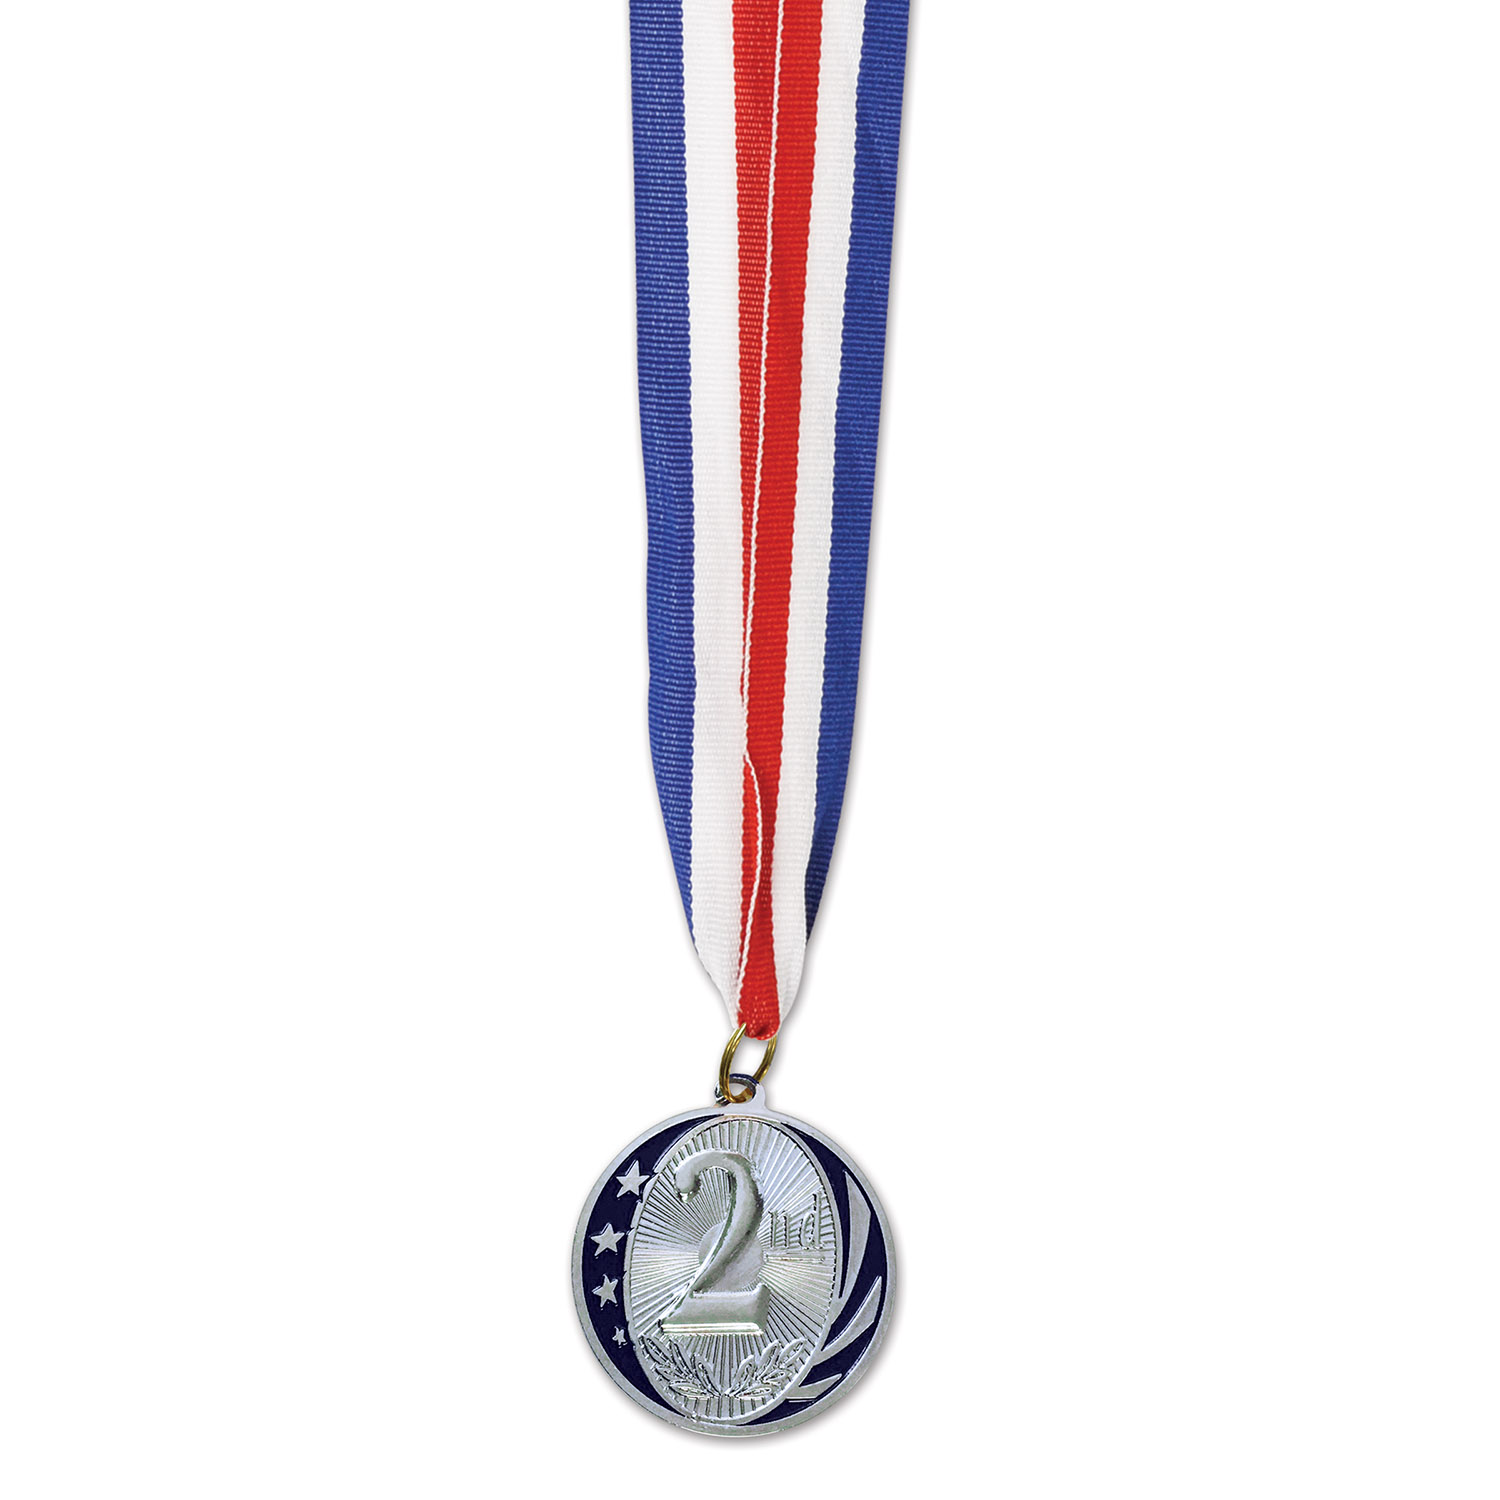 2nd Place Medal with Ribbon (Pack of 12) 2nd Place Medal, Second Place, Silver Medal, Sports Award, Sports Ribbon, Inexpensive Awards Medal, Wholesale party supplies